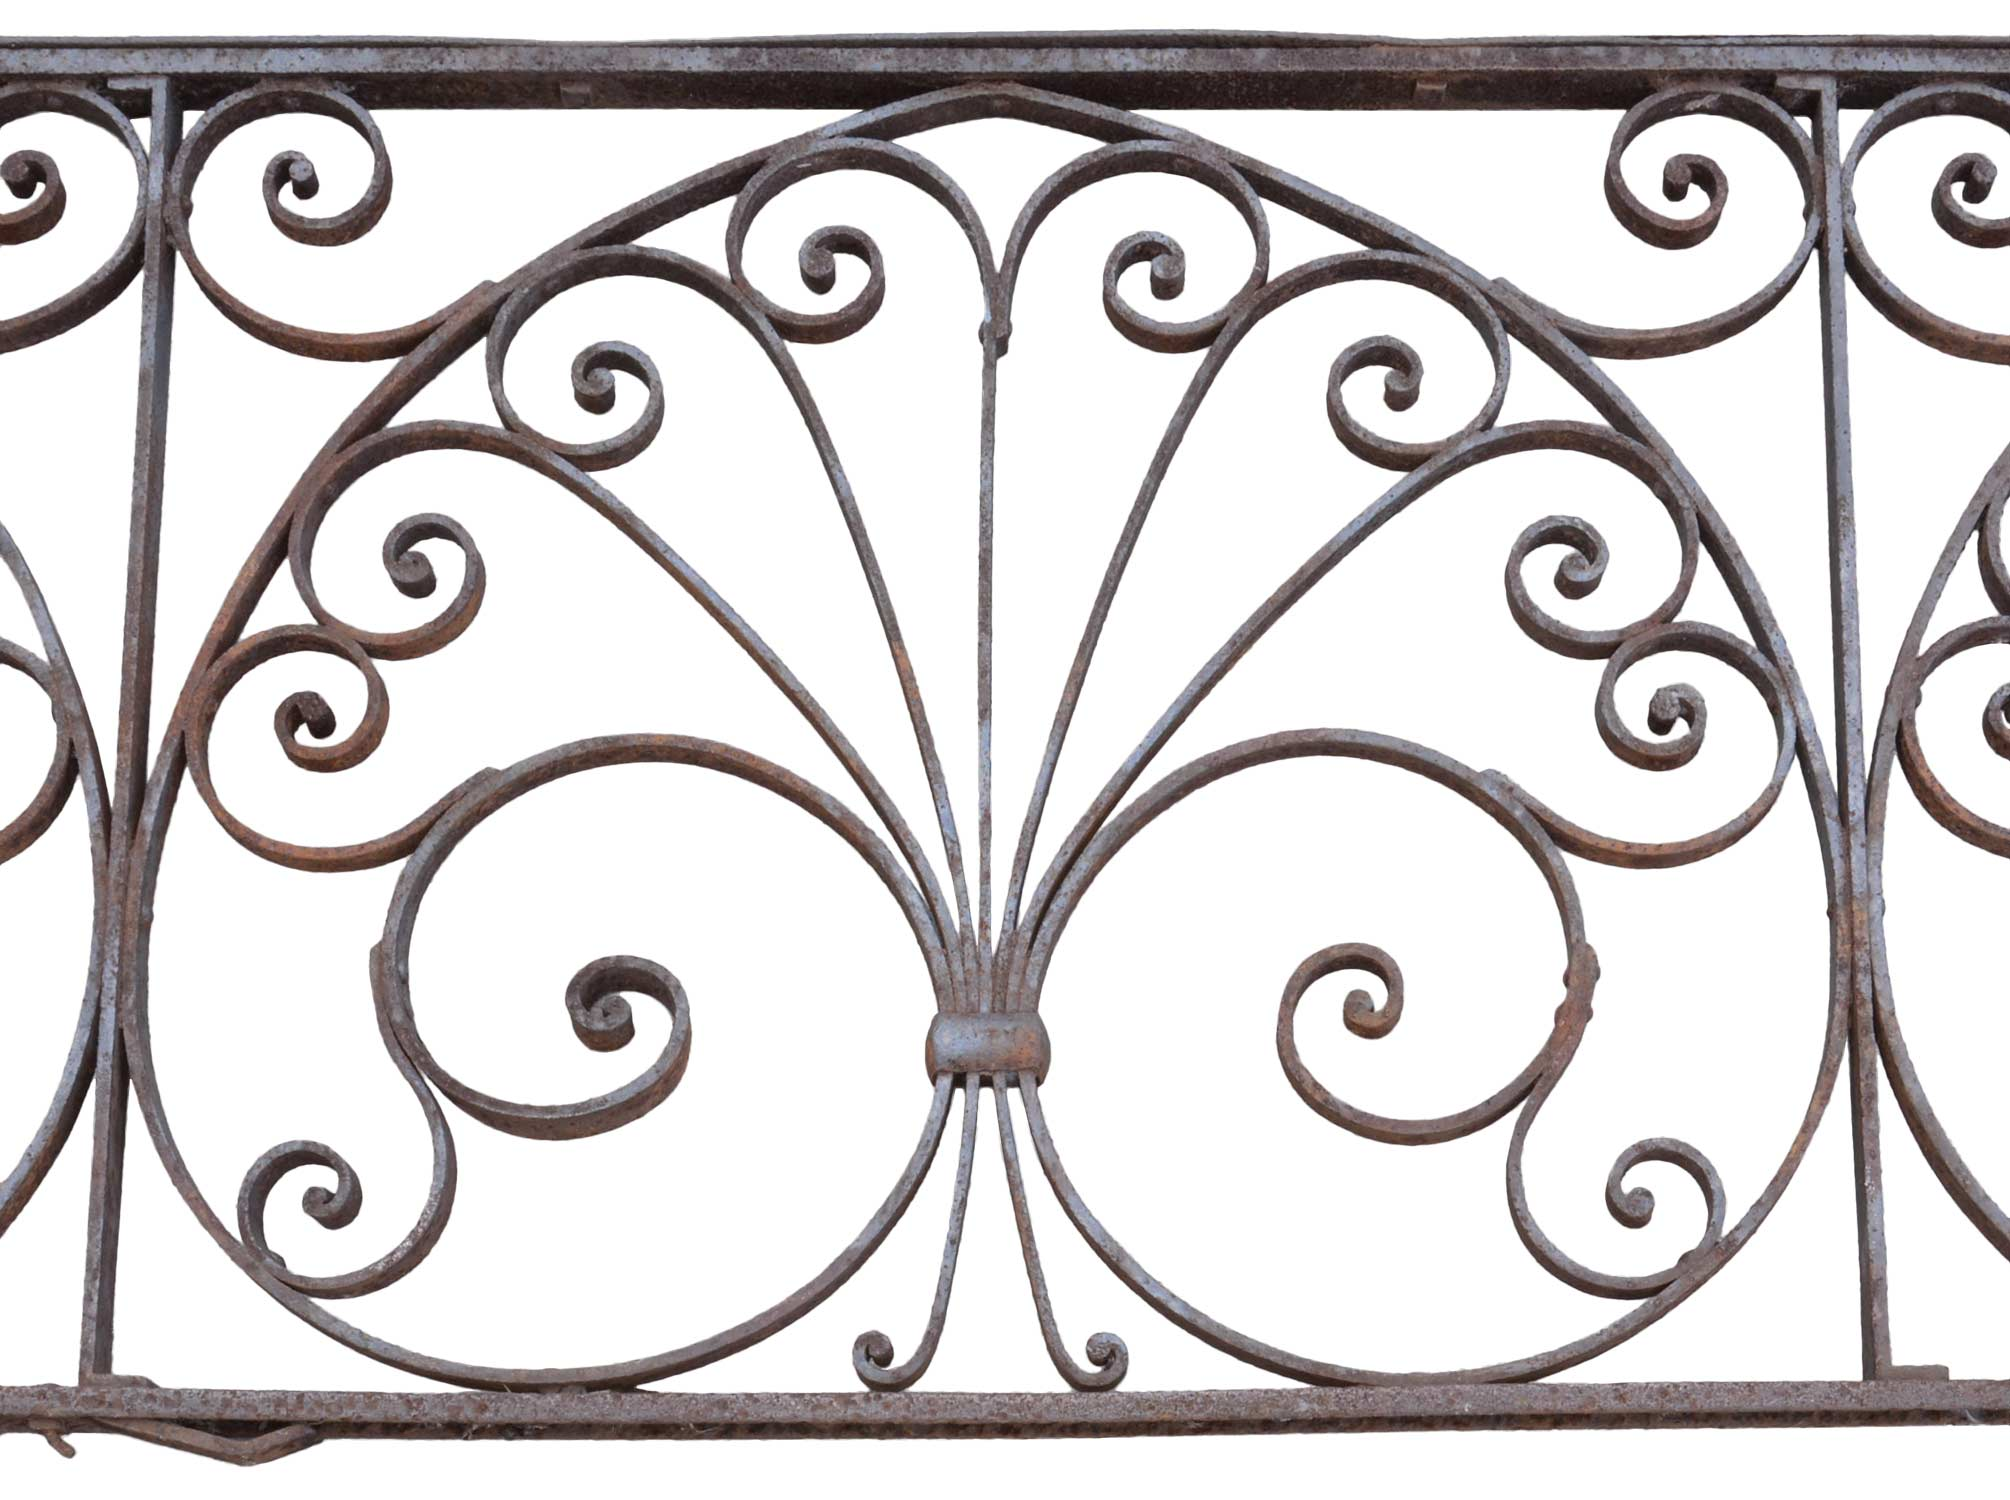 46070-iron-fence-with-decorative-scroll-shell-detail.jpg